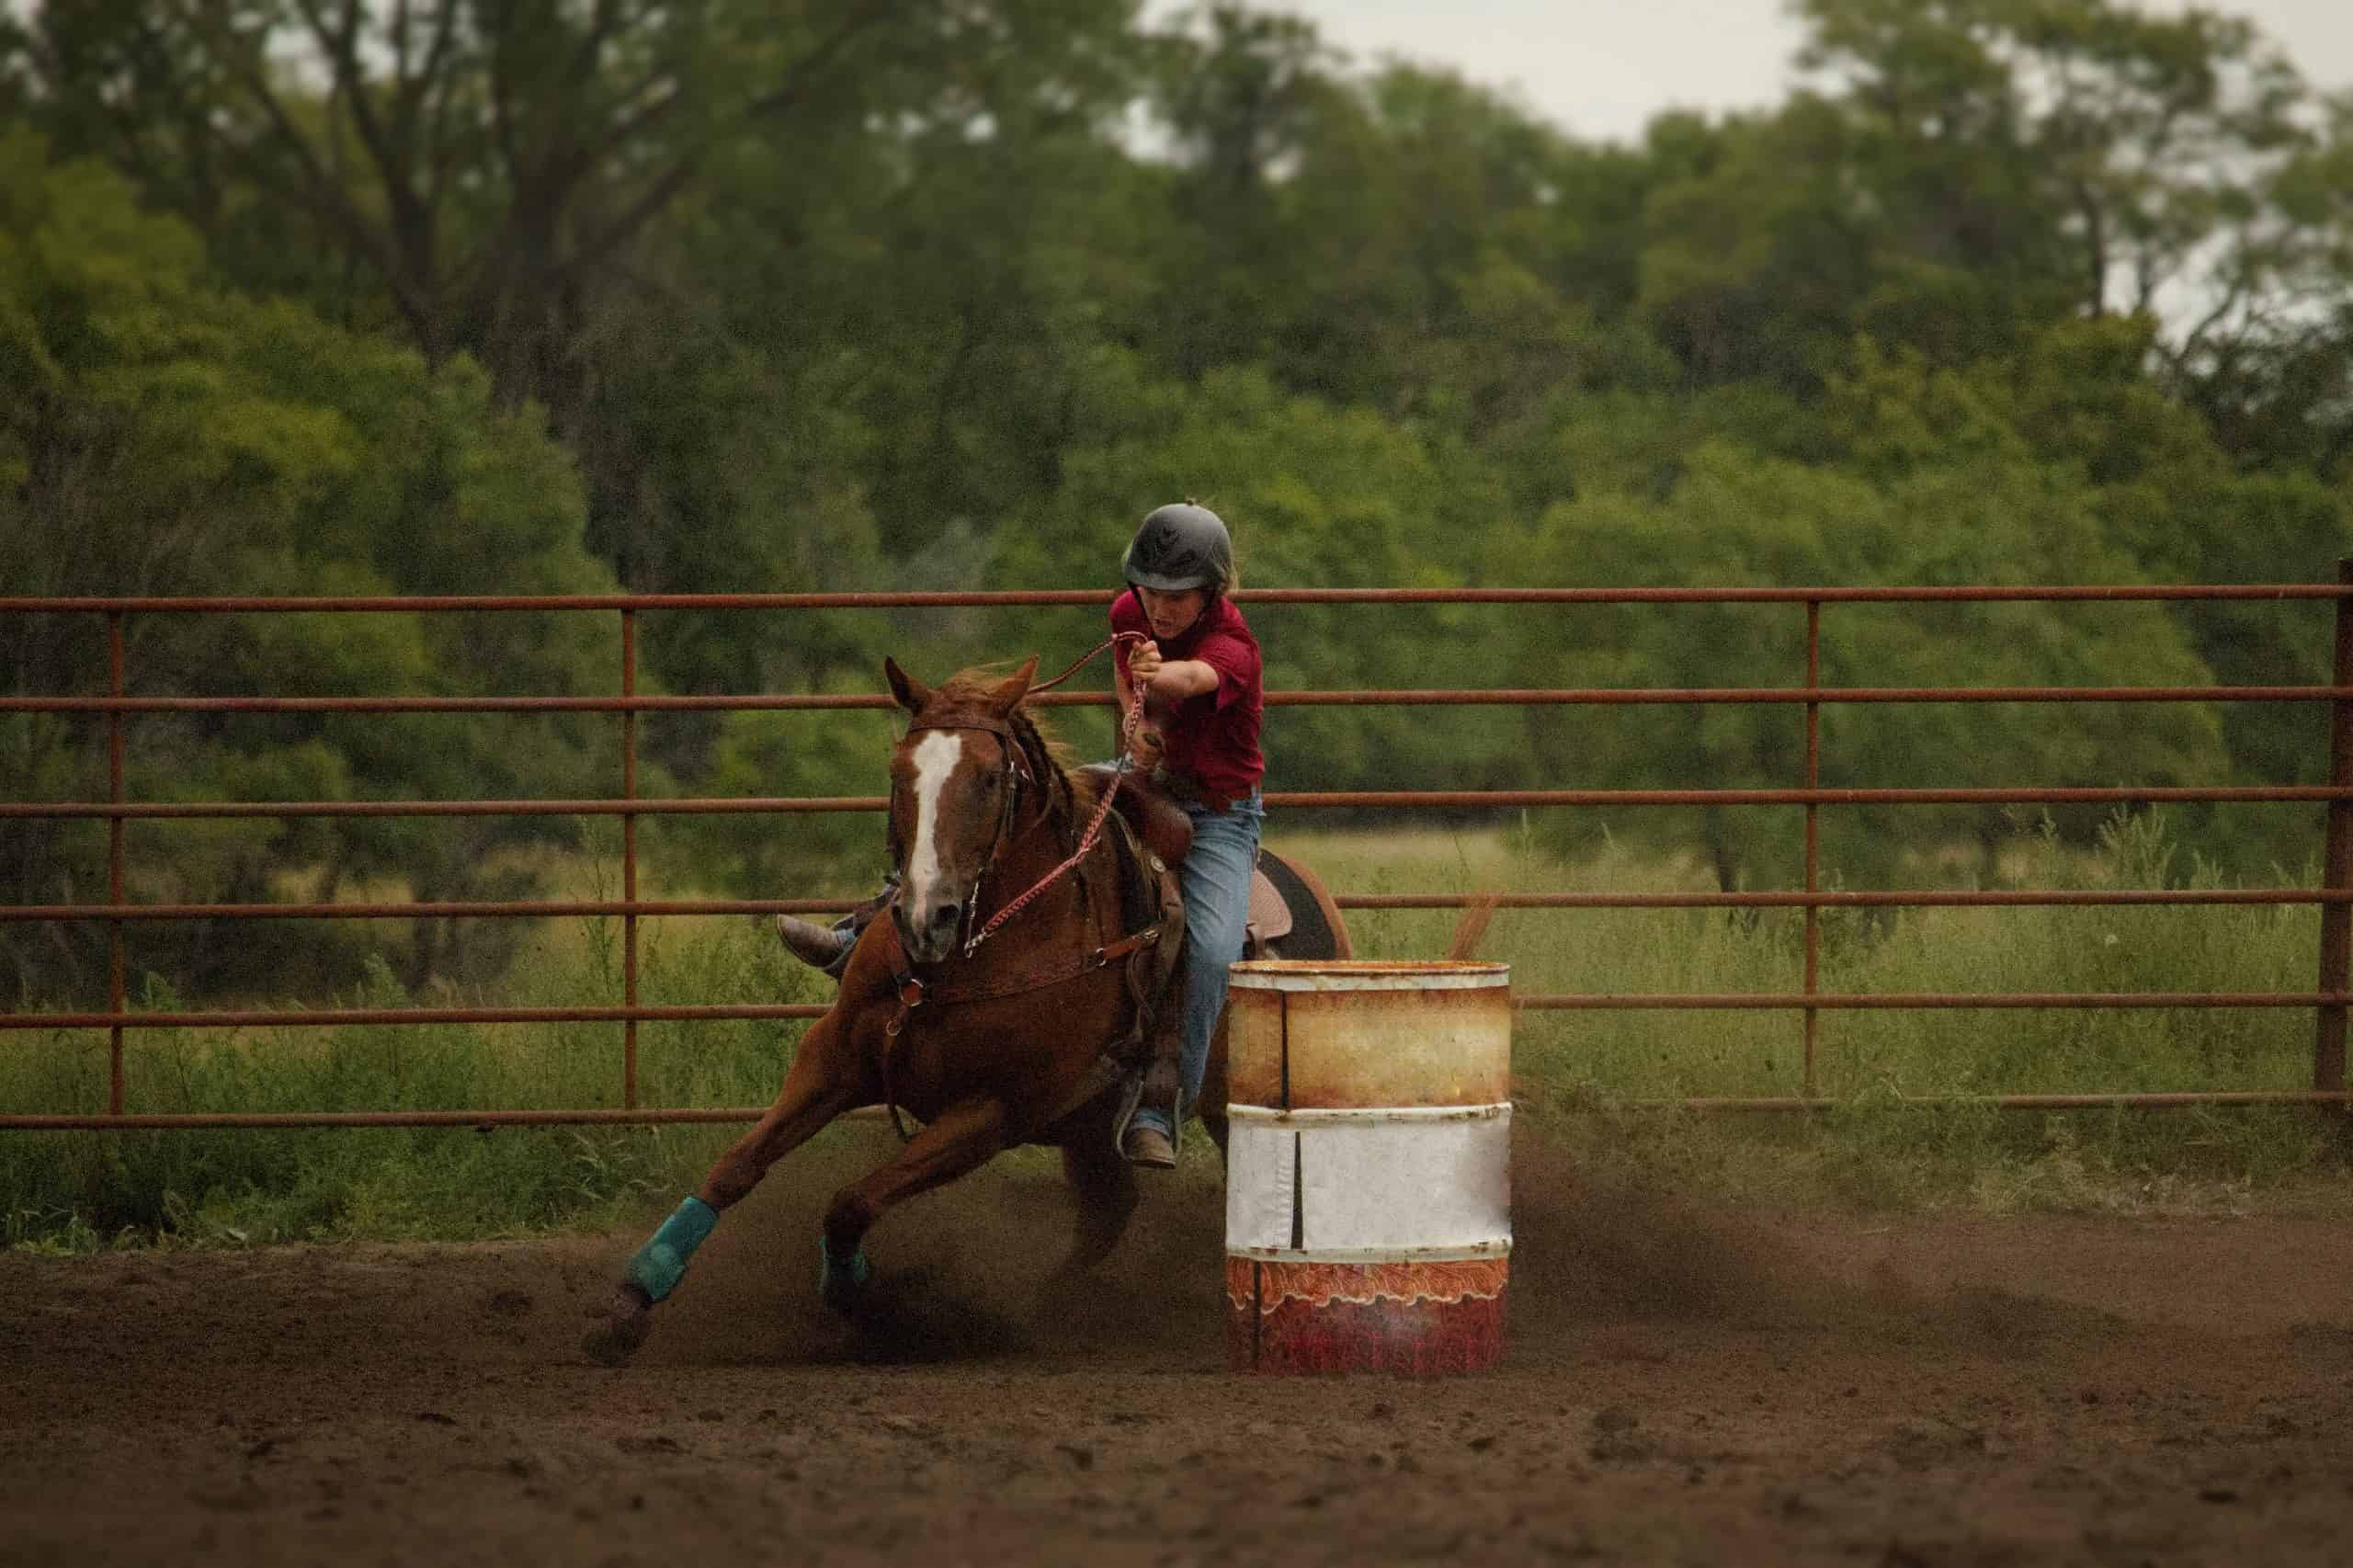 Outdoor barrel racing in sun and shade jackpot rodeo horse event